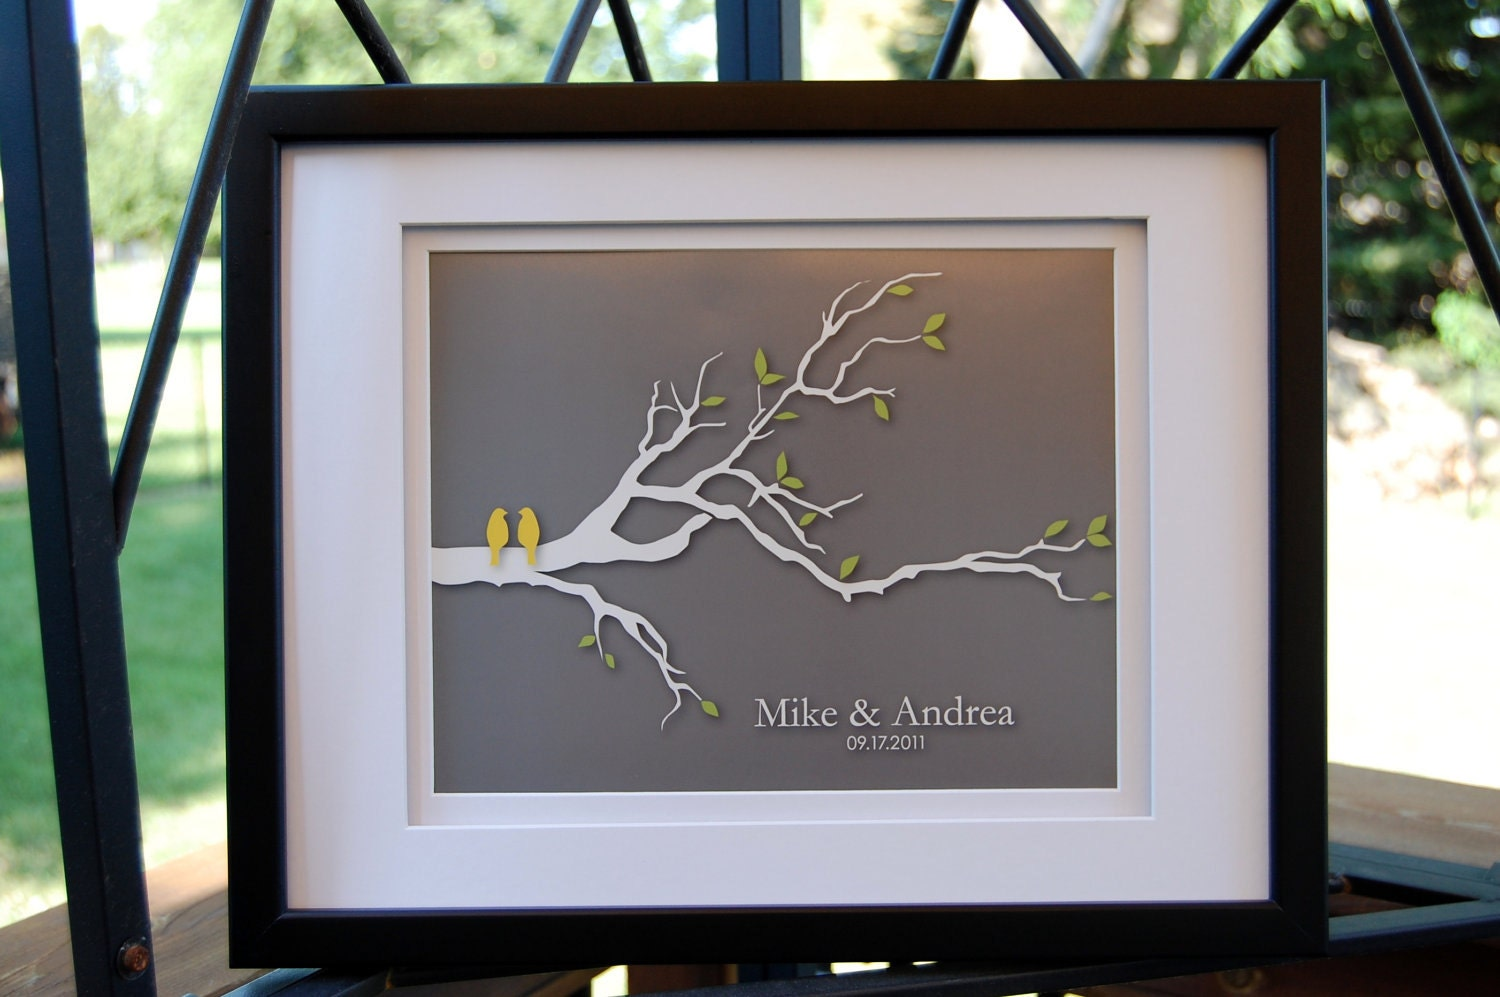 Wedding Gifts For Relatives : Items similar to Modern Family Tree GiftPersonalized Custom Wedding ...